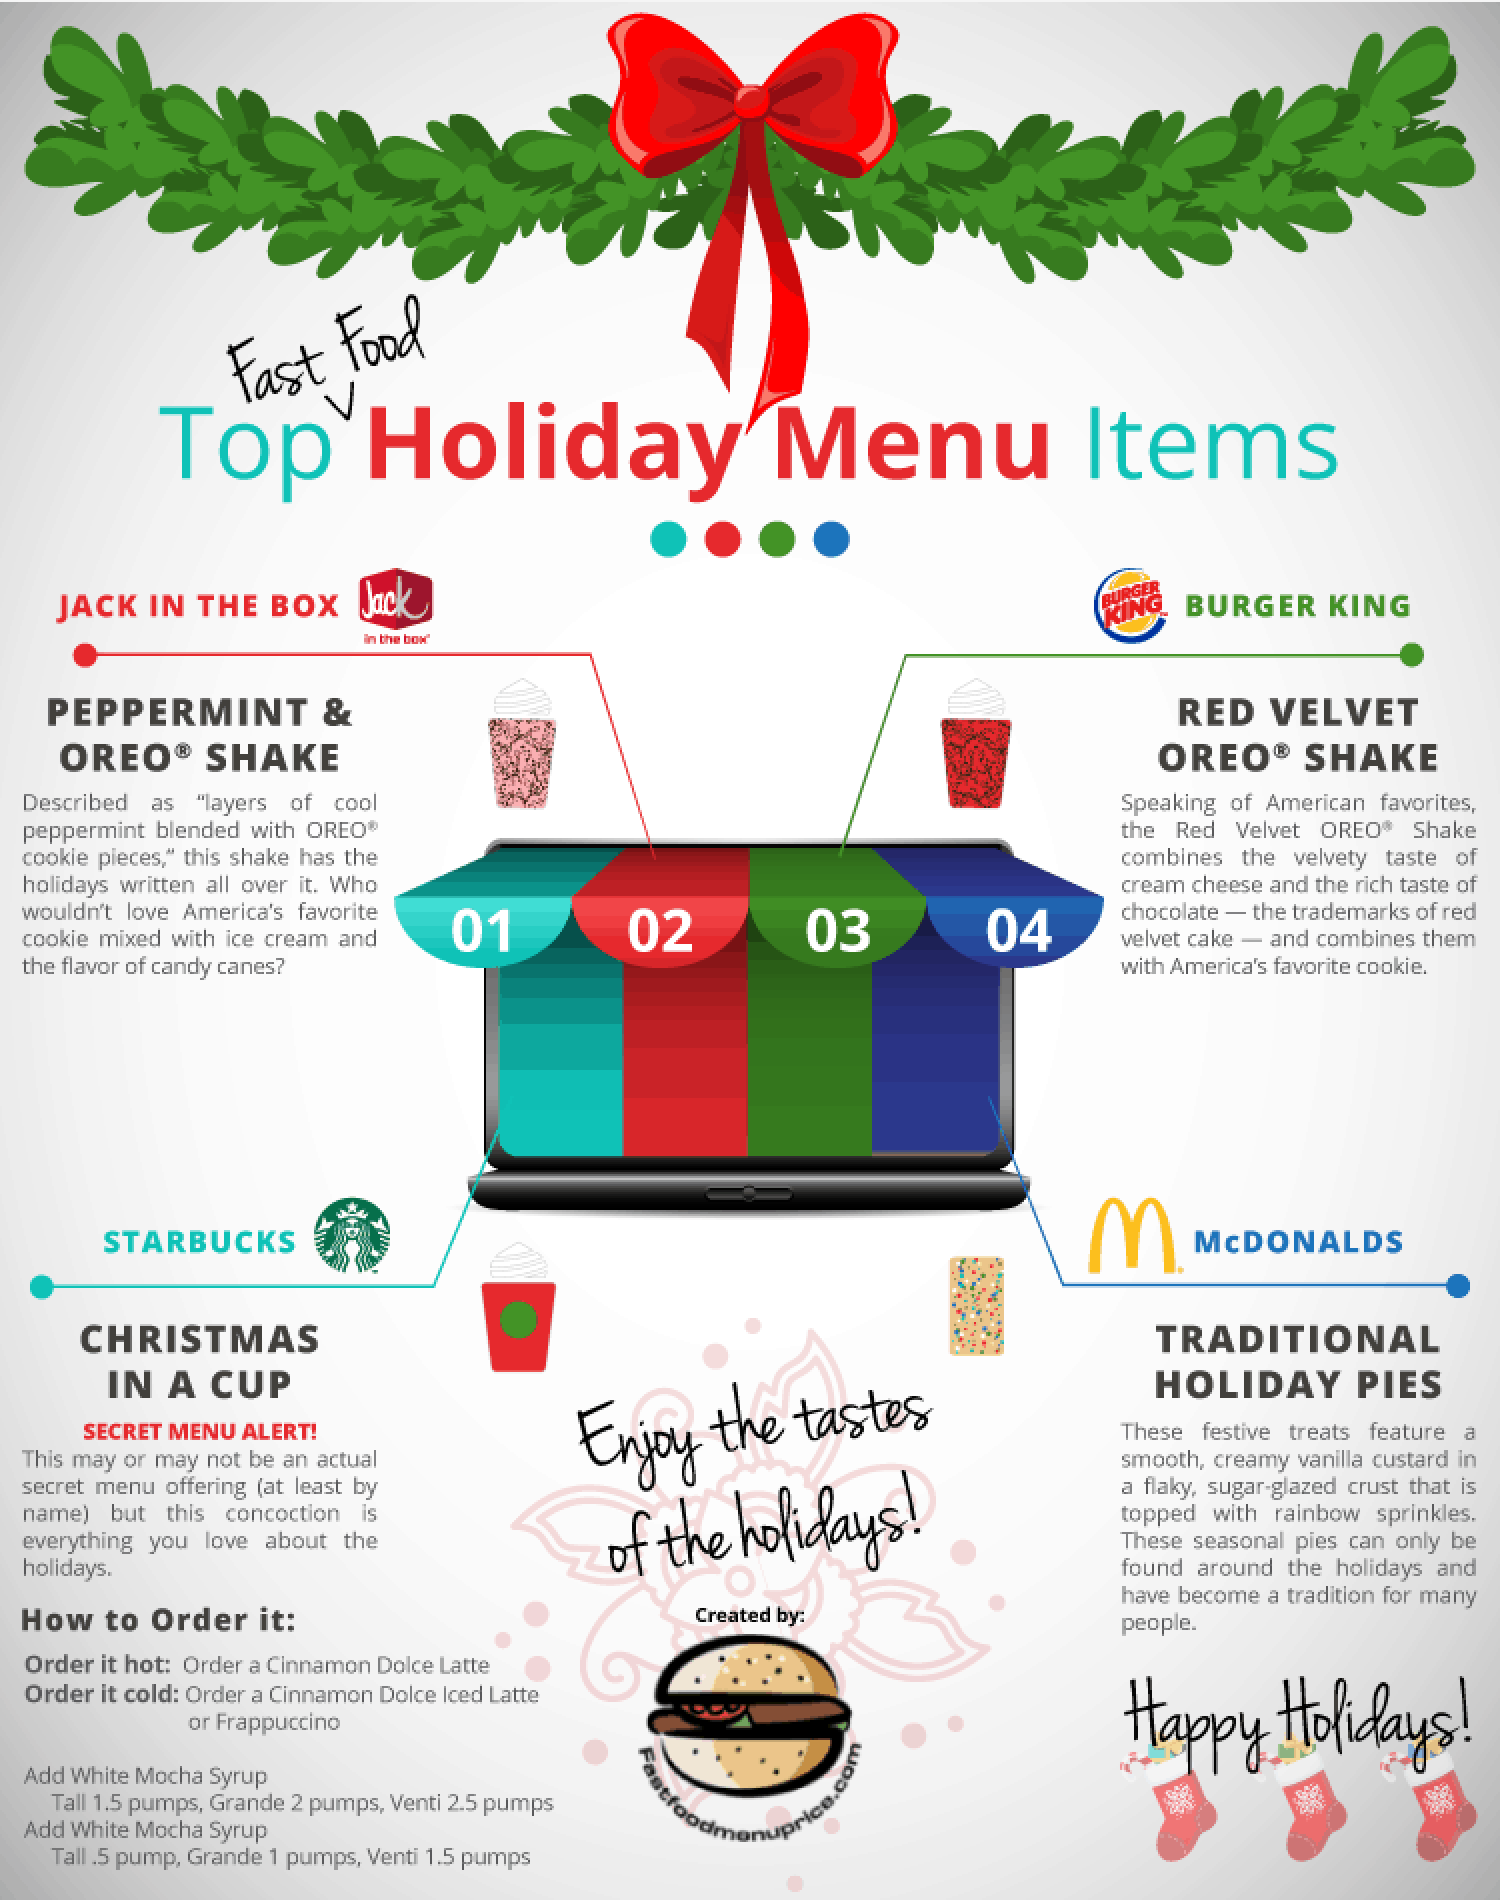 Amazing holiday treats youre missing out on Infographic